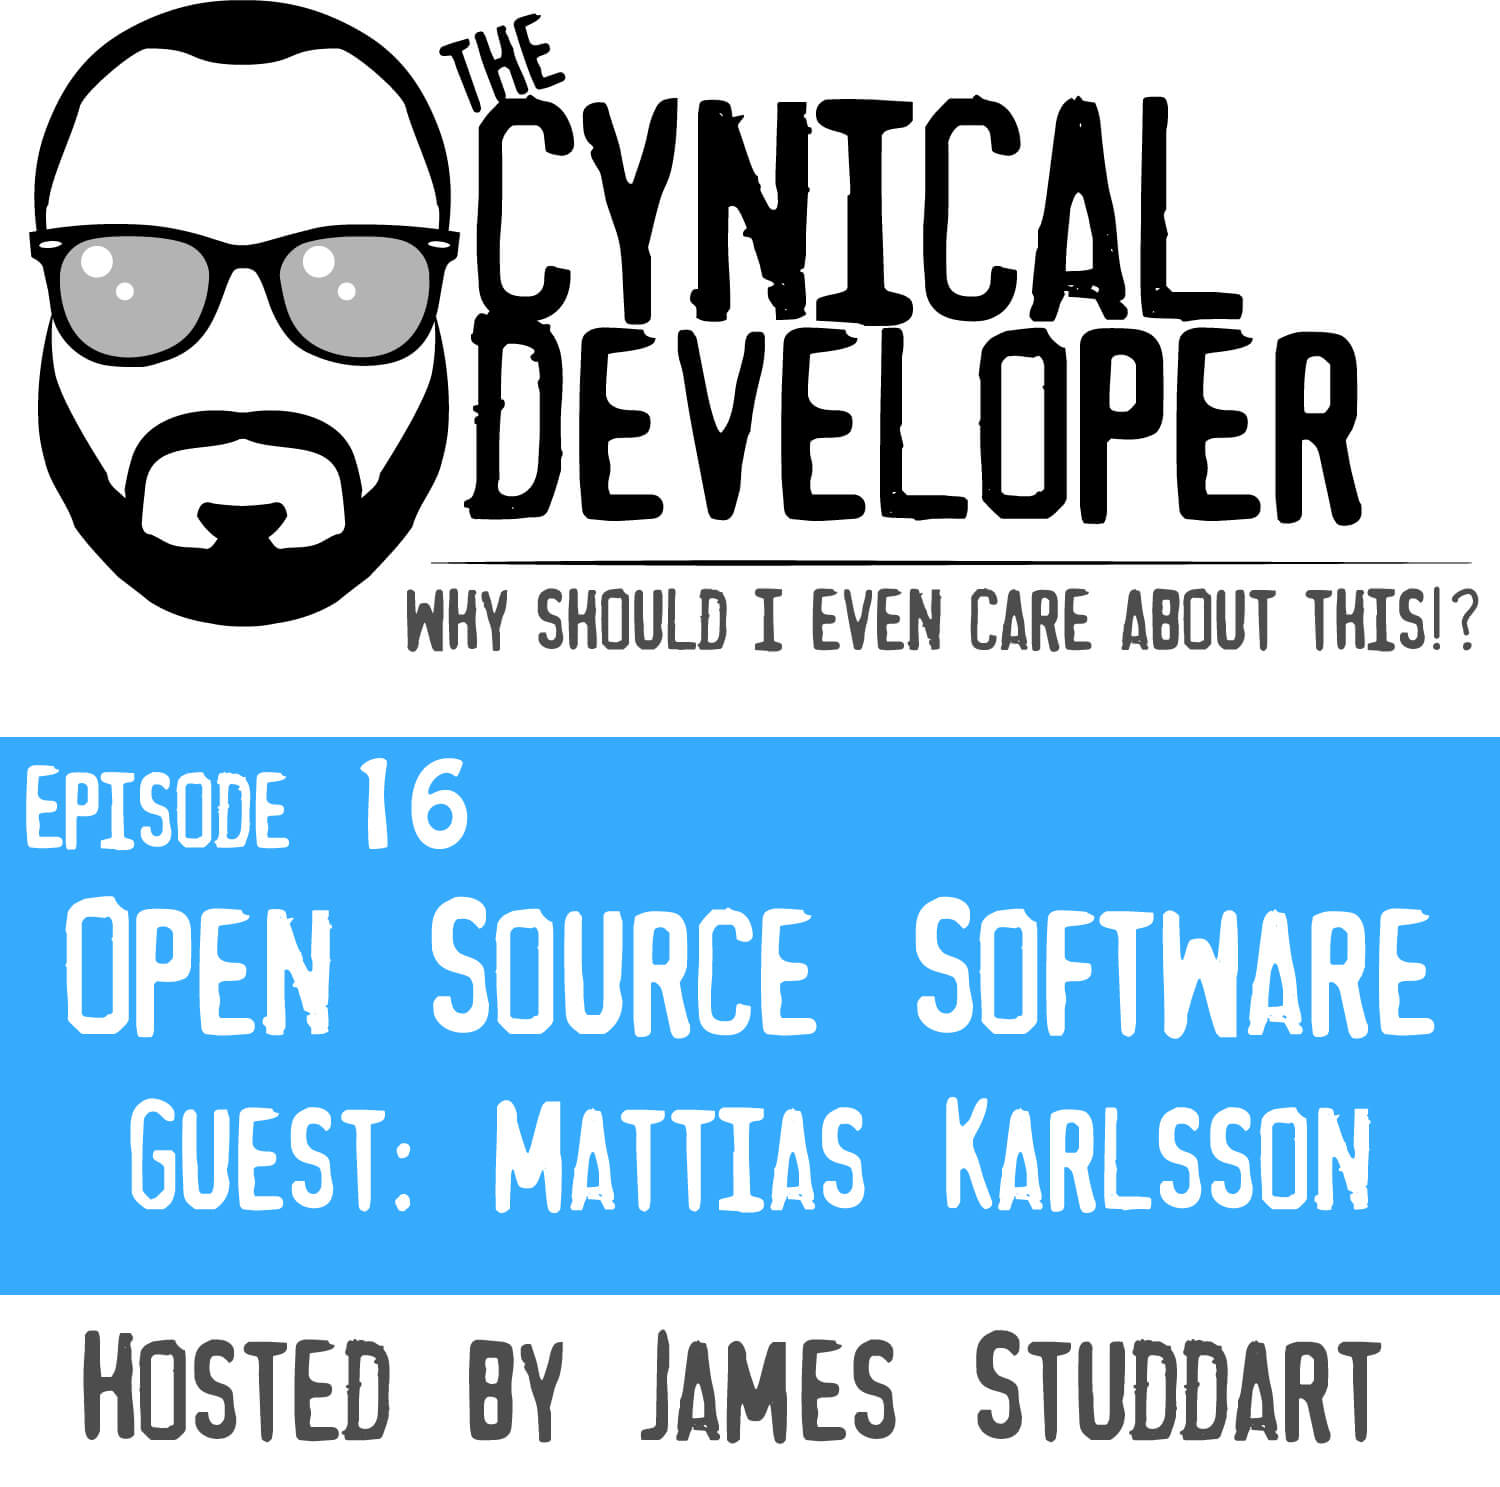 Episode 16 - Open Source Software